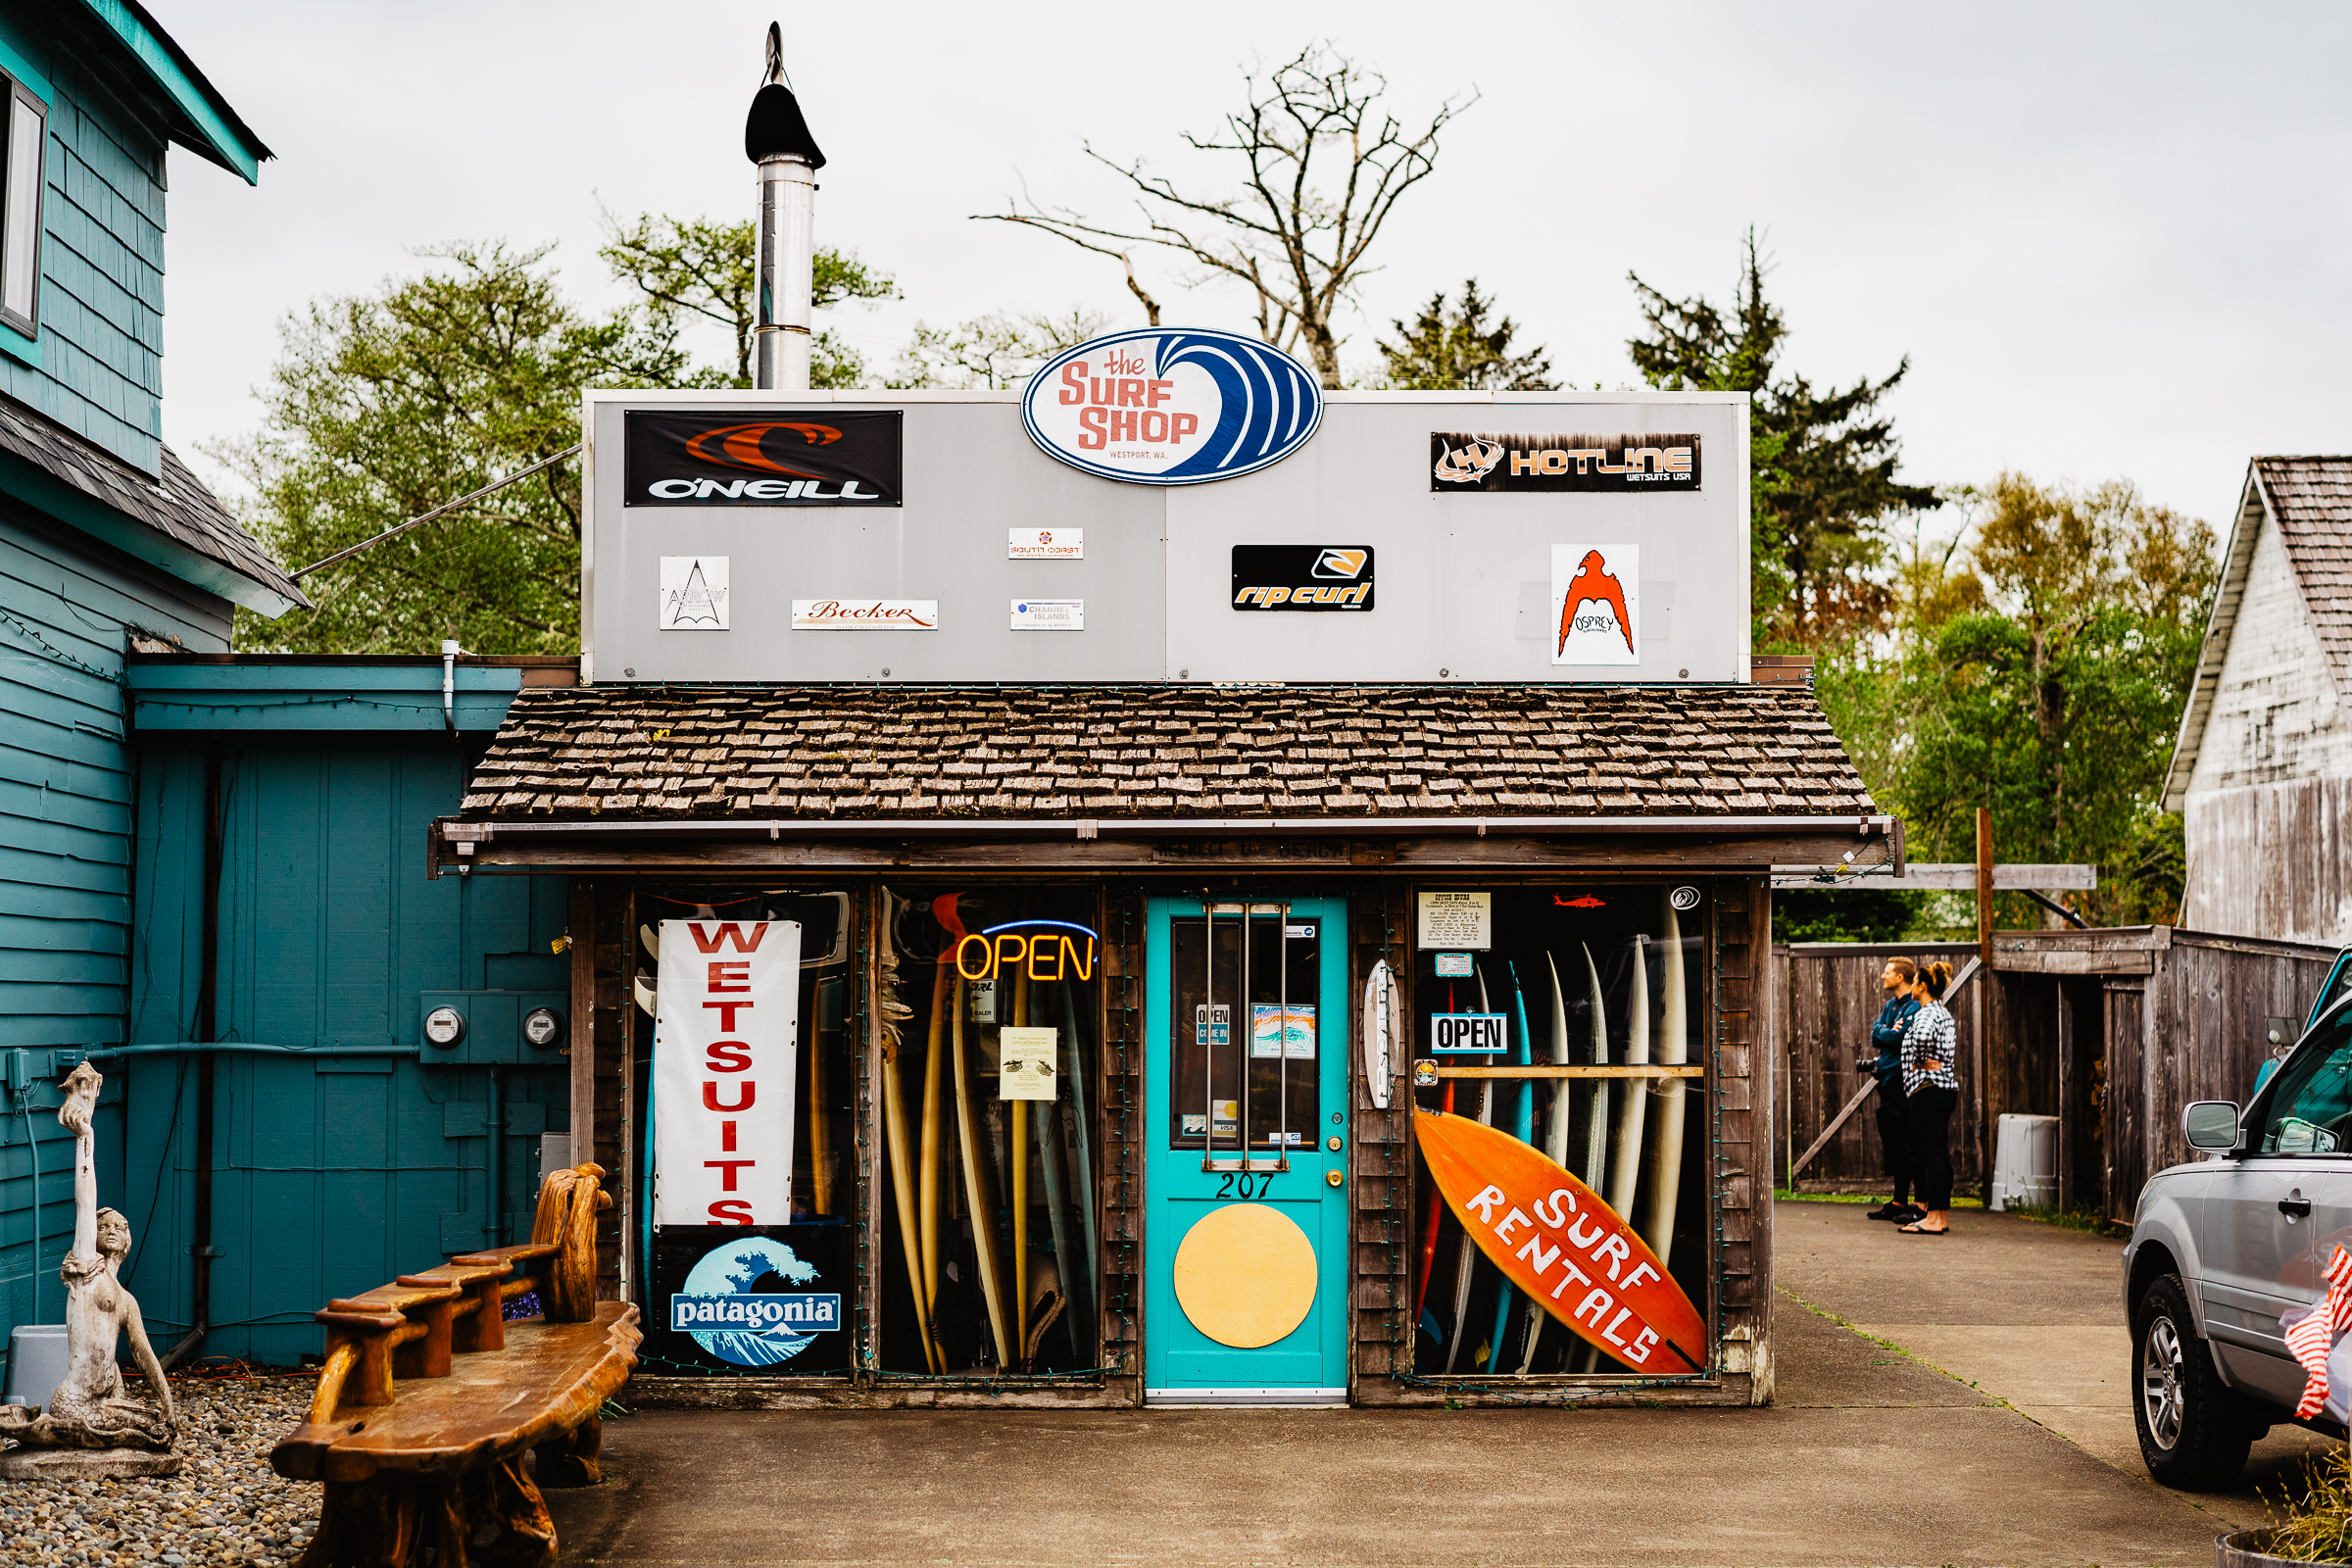 WESTPORT, WA - A SMALL TOWN WITH BIG SURF